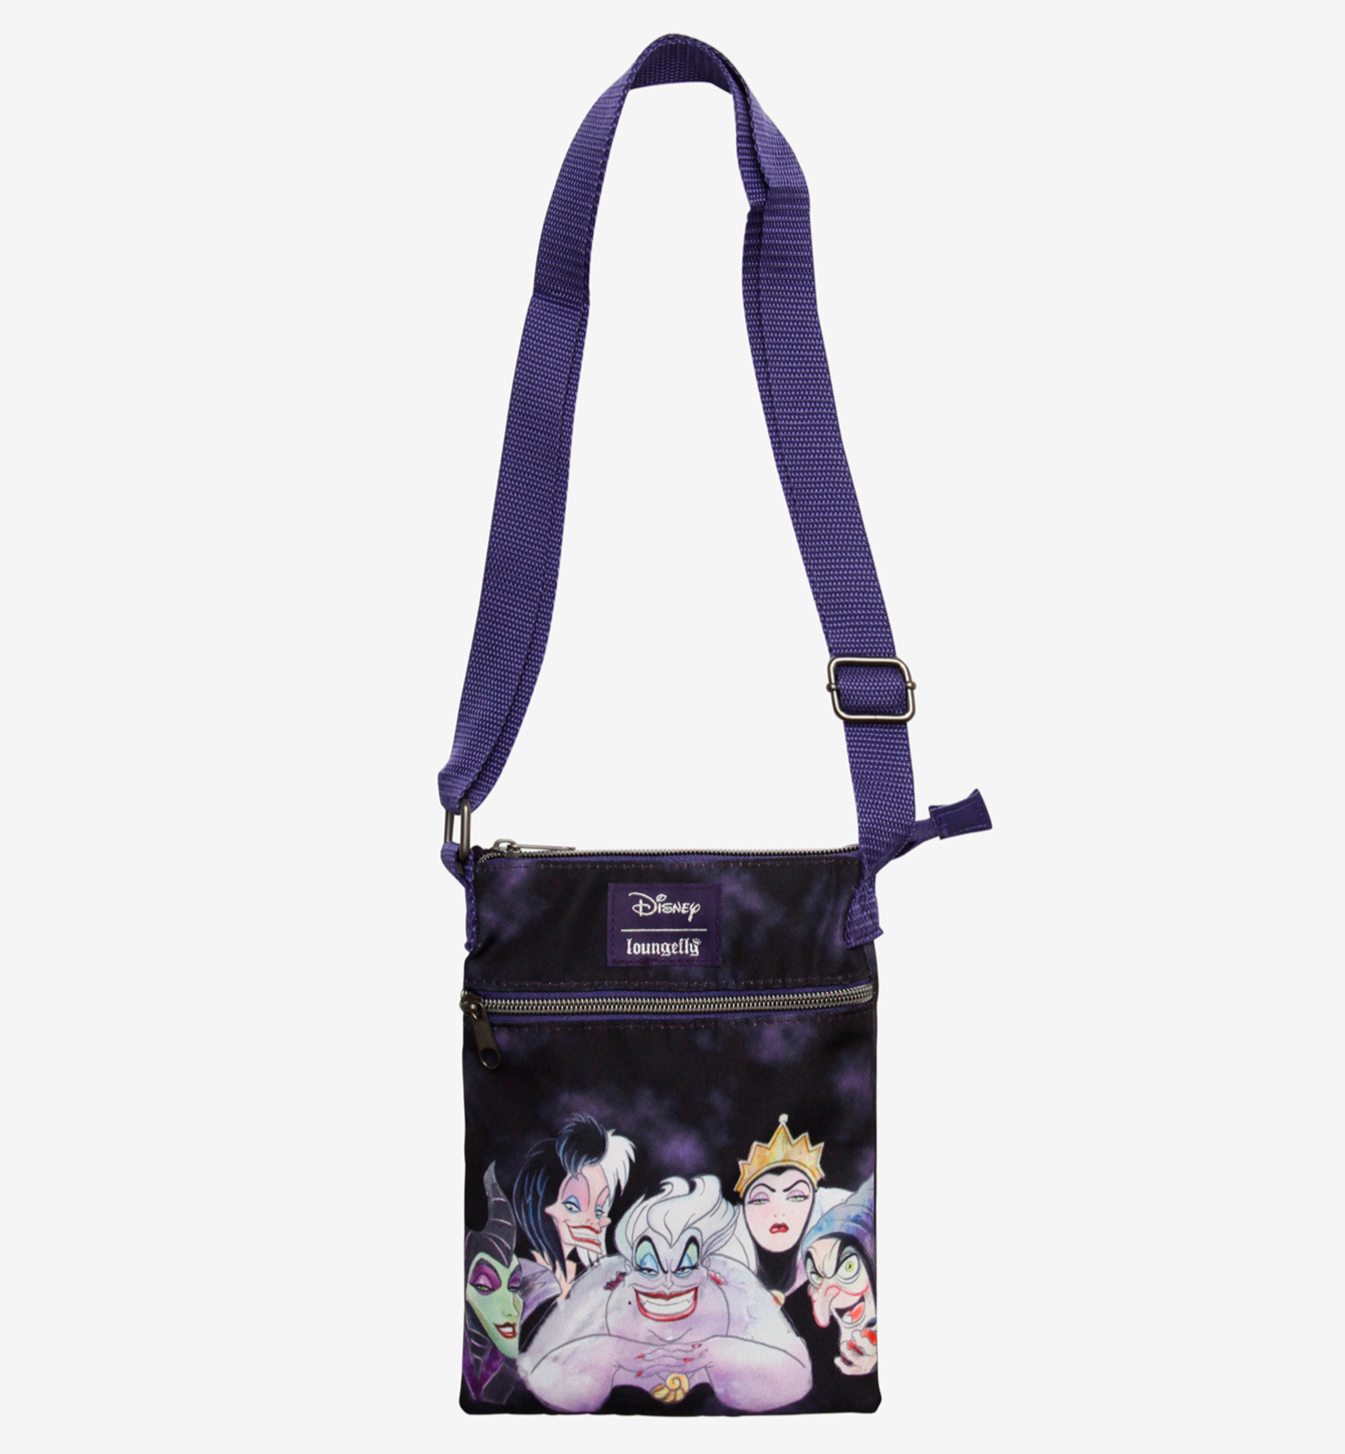 Loungefly Disney Villains Acid Wash Passport Crossbody Bag